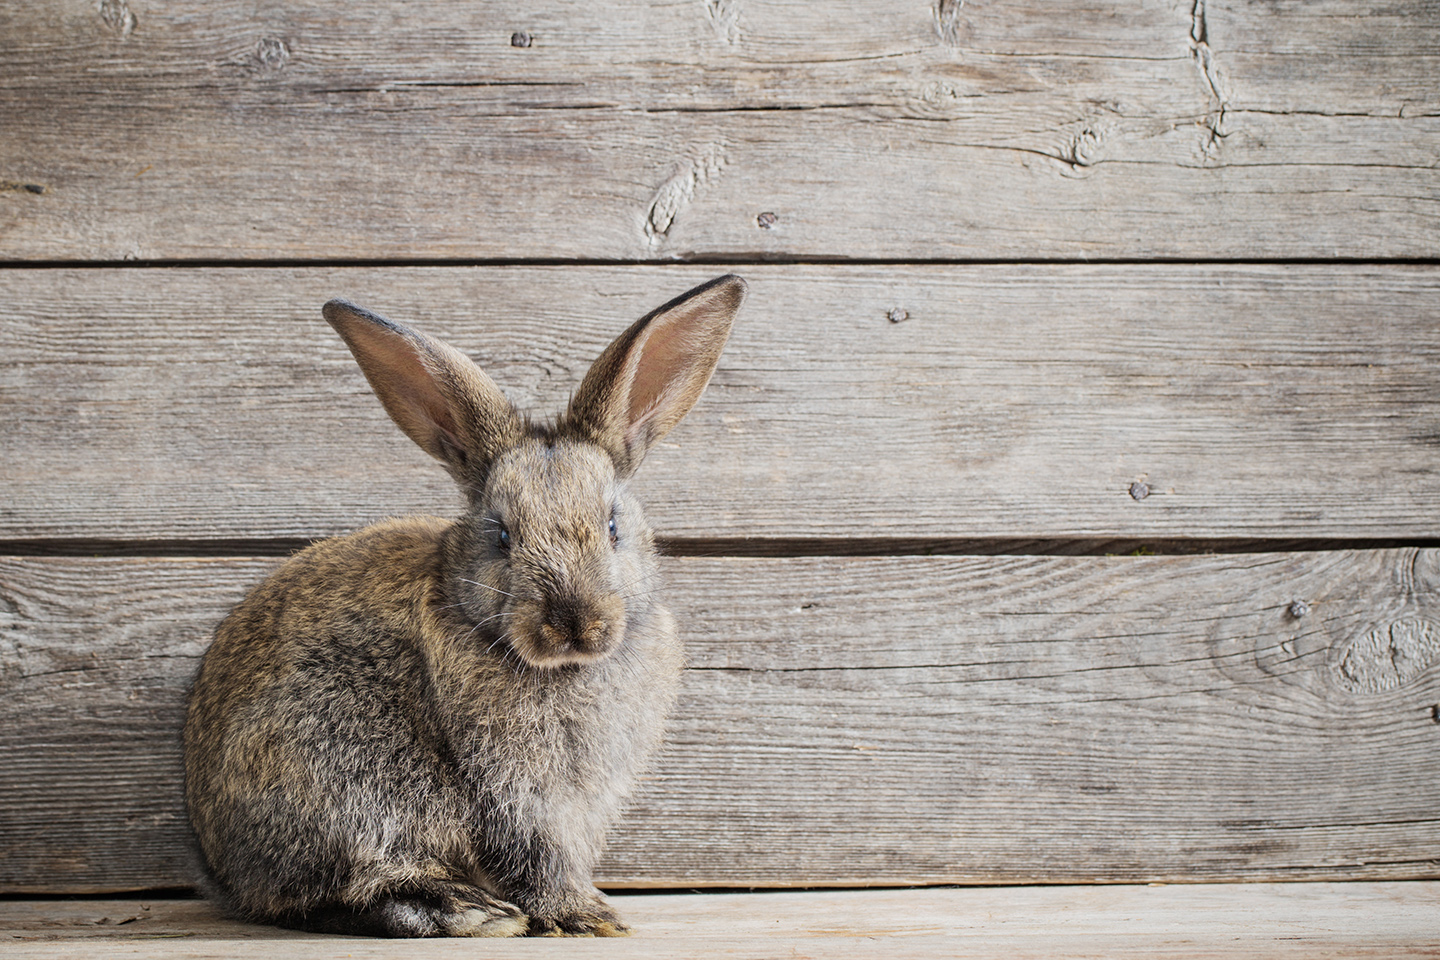 A rabbit posing with wooden panels behind it